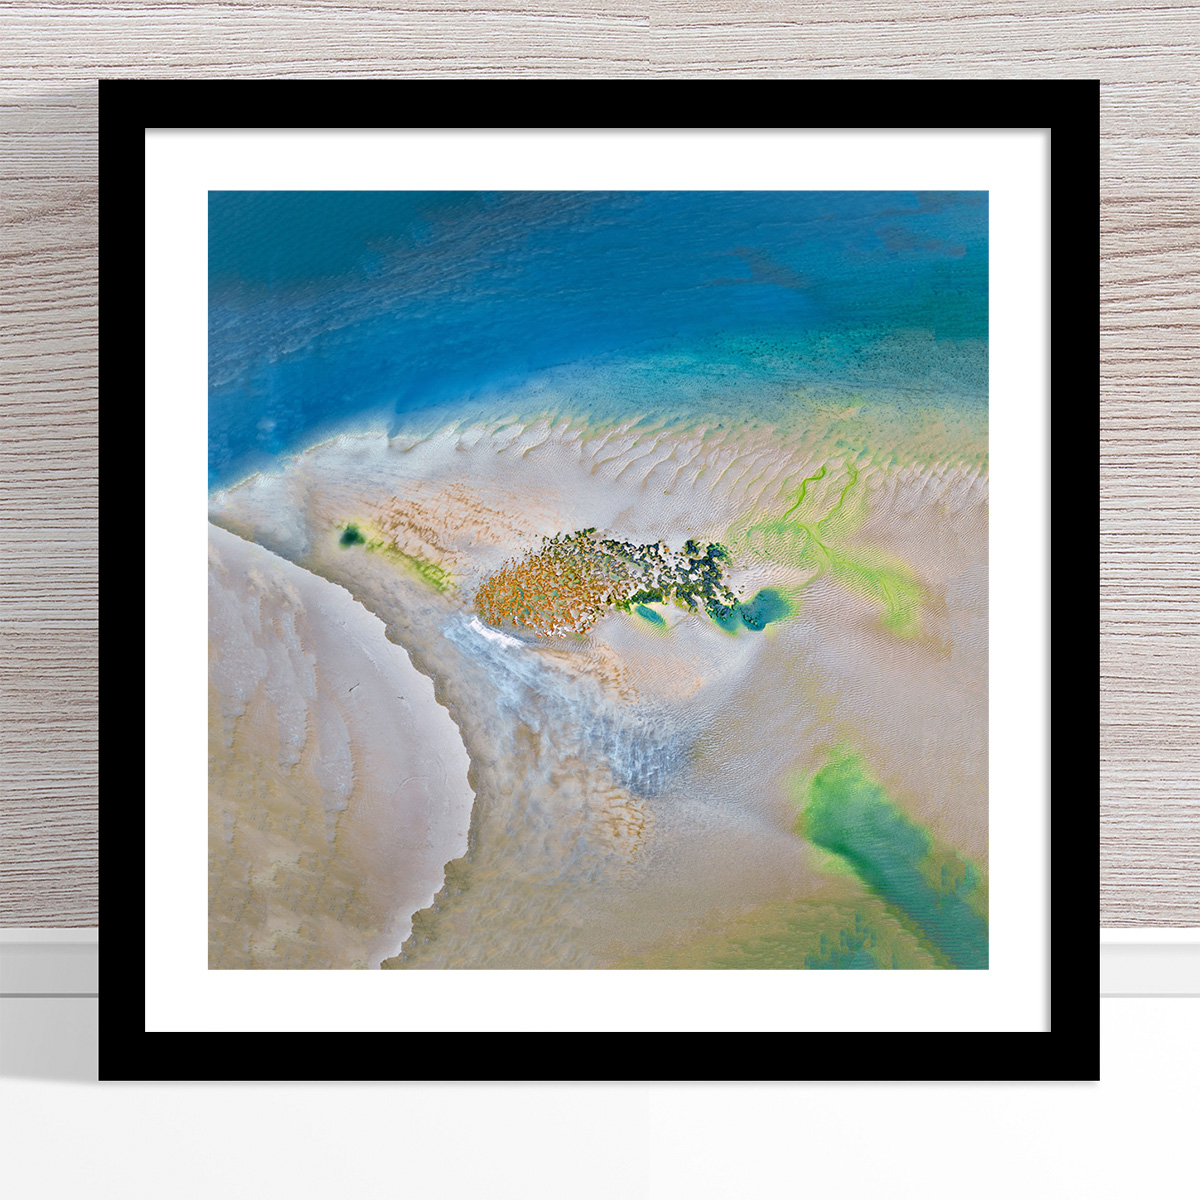 Chris Saunders - 'Aerial Coast 008' Black Frame